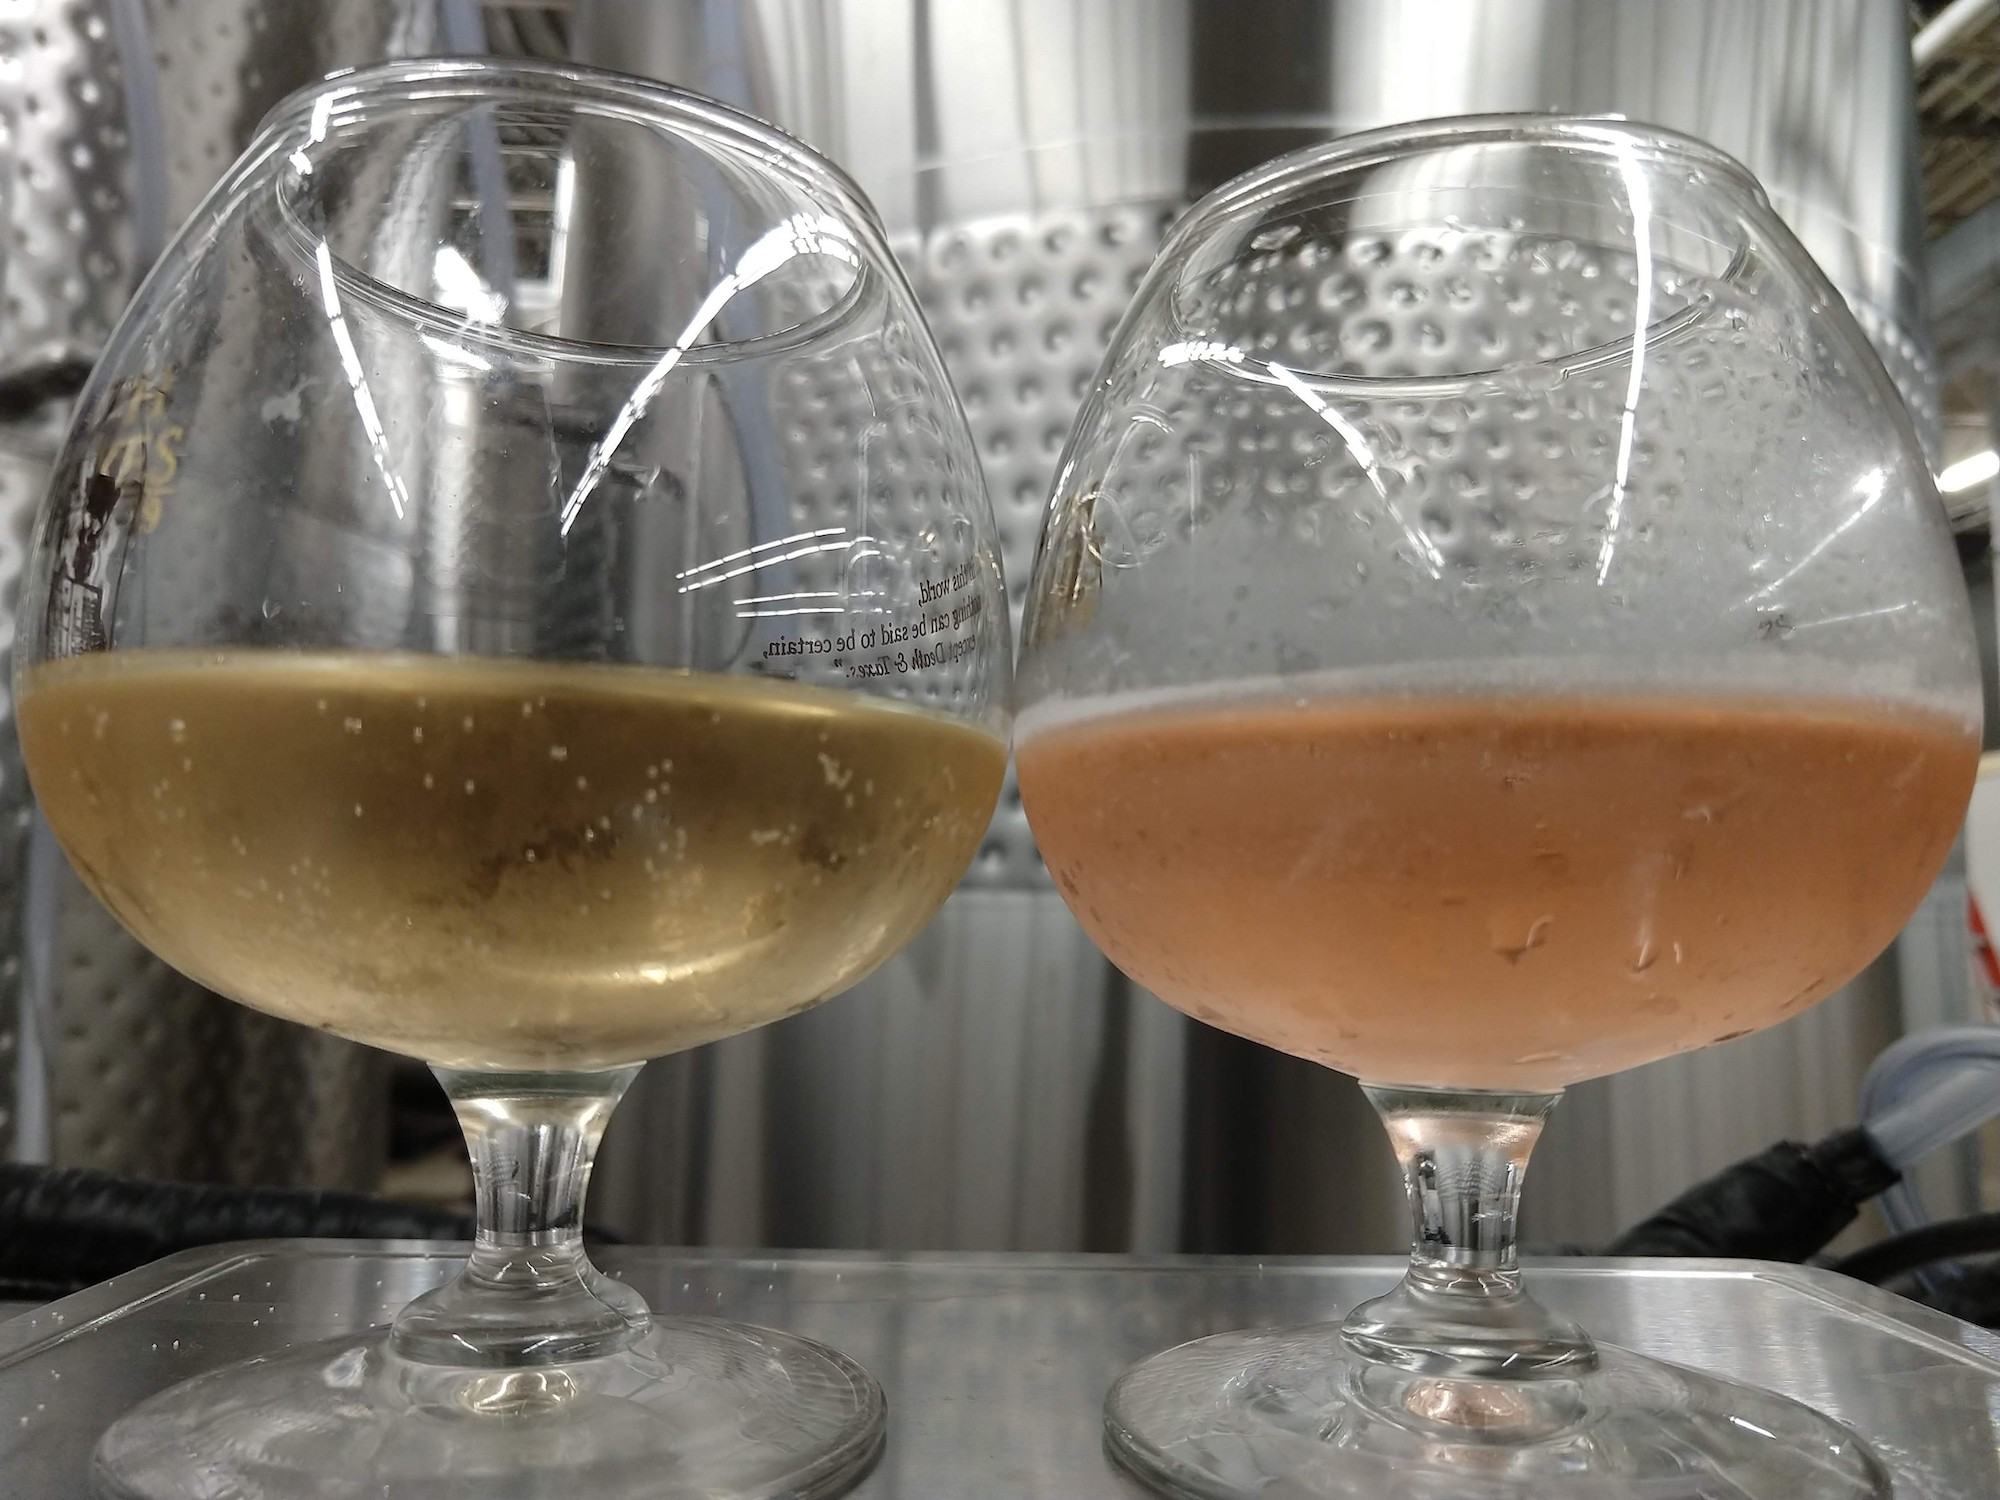 Here's a picture with two samples of our tart cherry cider poured from the same tank. The only difference is that the one on the left has a little bit of added acidity. They both have the exact same amount and type of anthocyanin pigment, but the pH is different due the added acidity, and thus the color is drastically different.